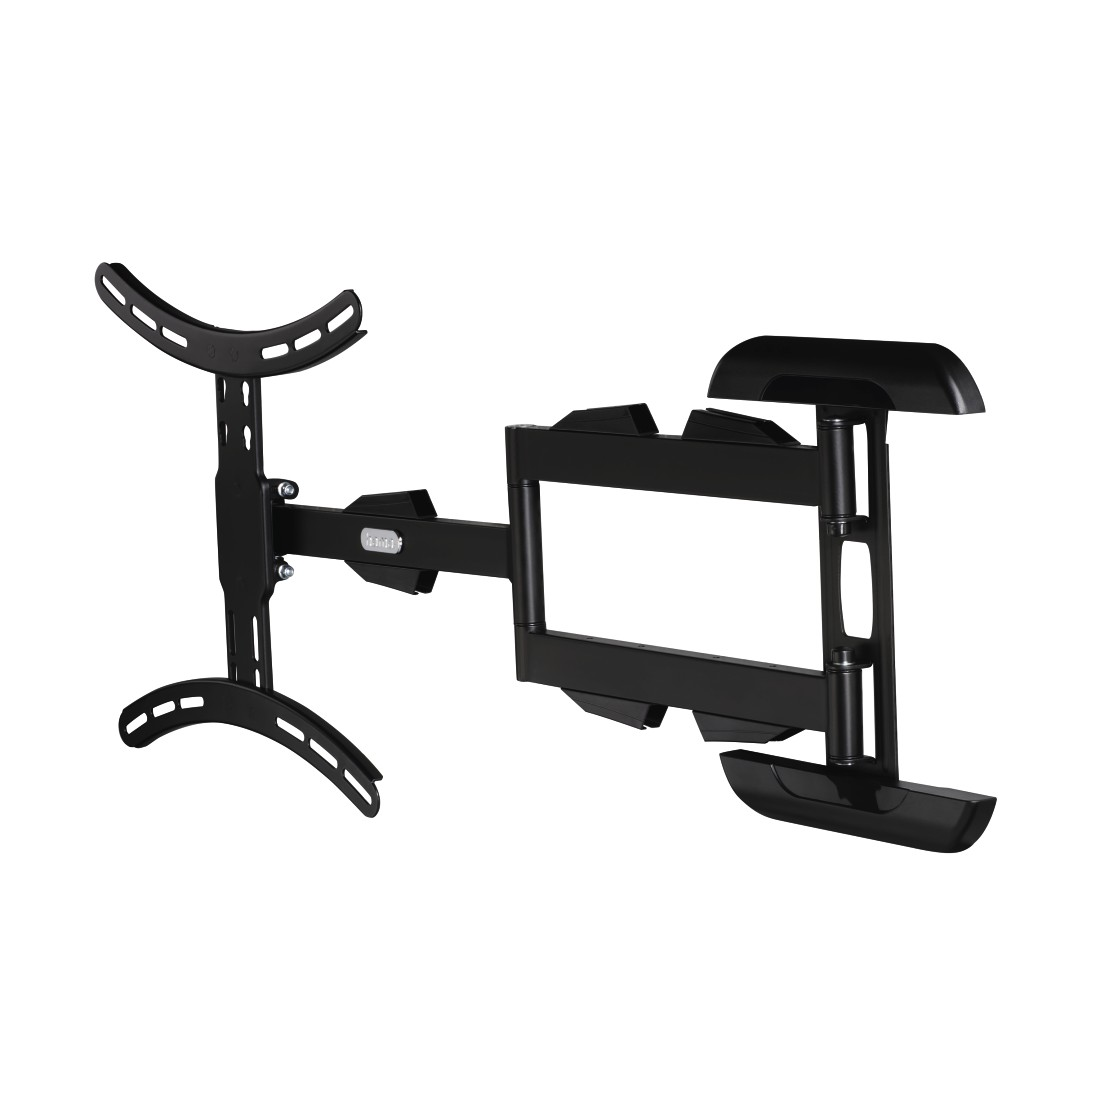 "dex9 High-Res Detail 9 - Hama, FULLMOTION TV Wall Bracket, 3 Stars, 165 cm (65""), 2 arms, ultra-long"